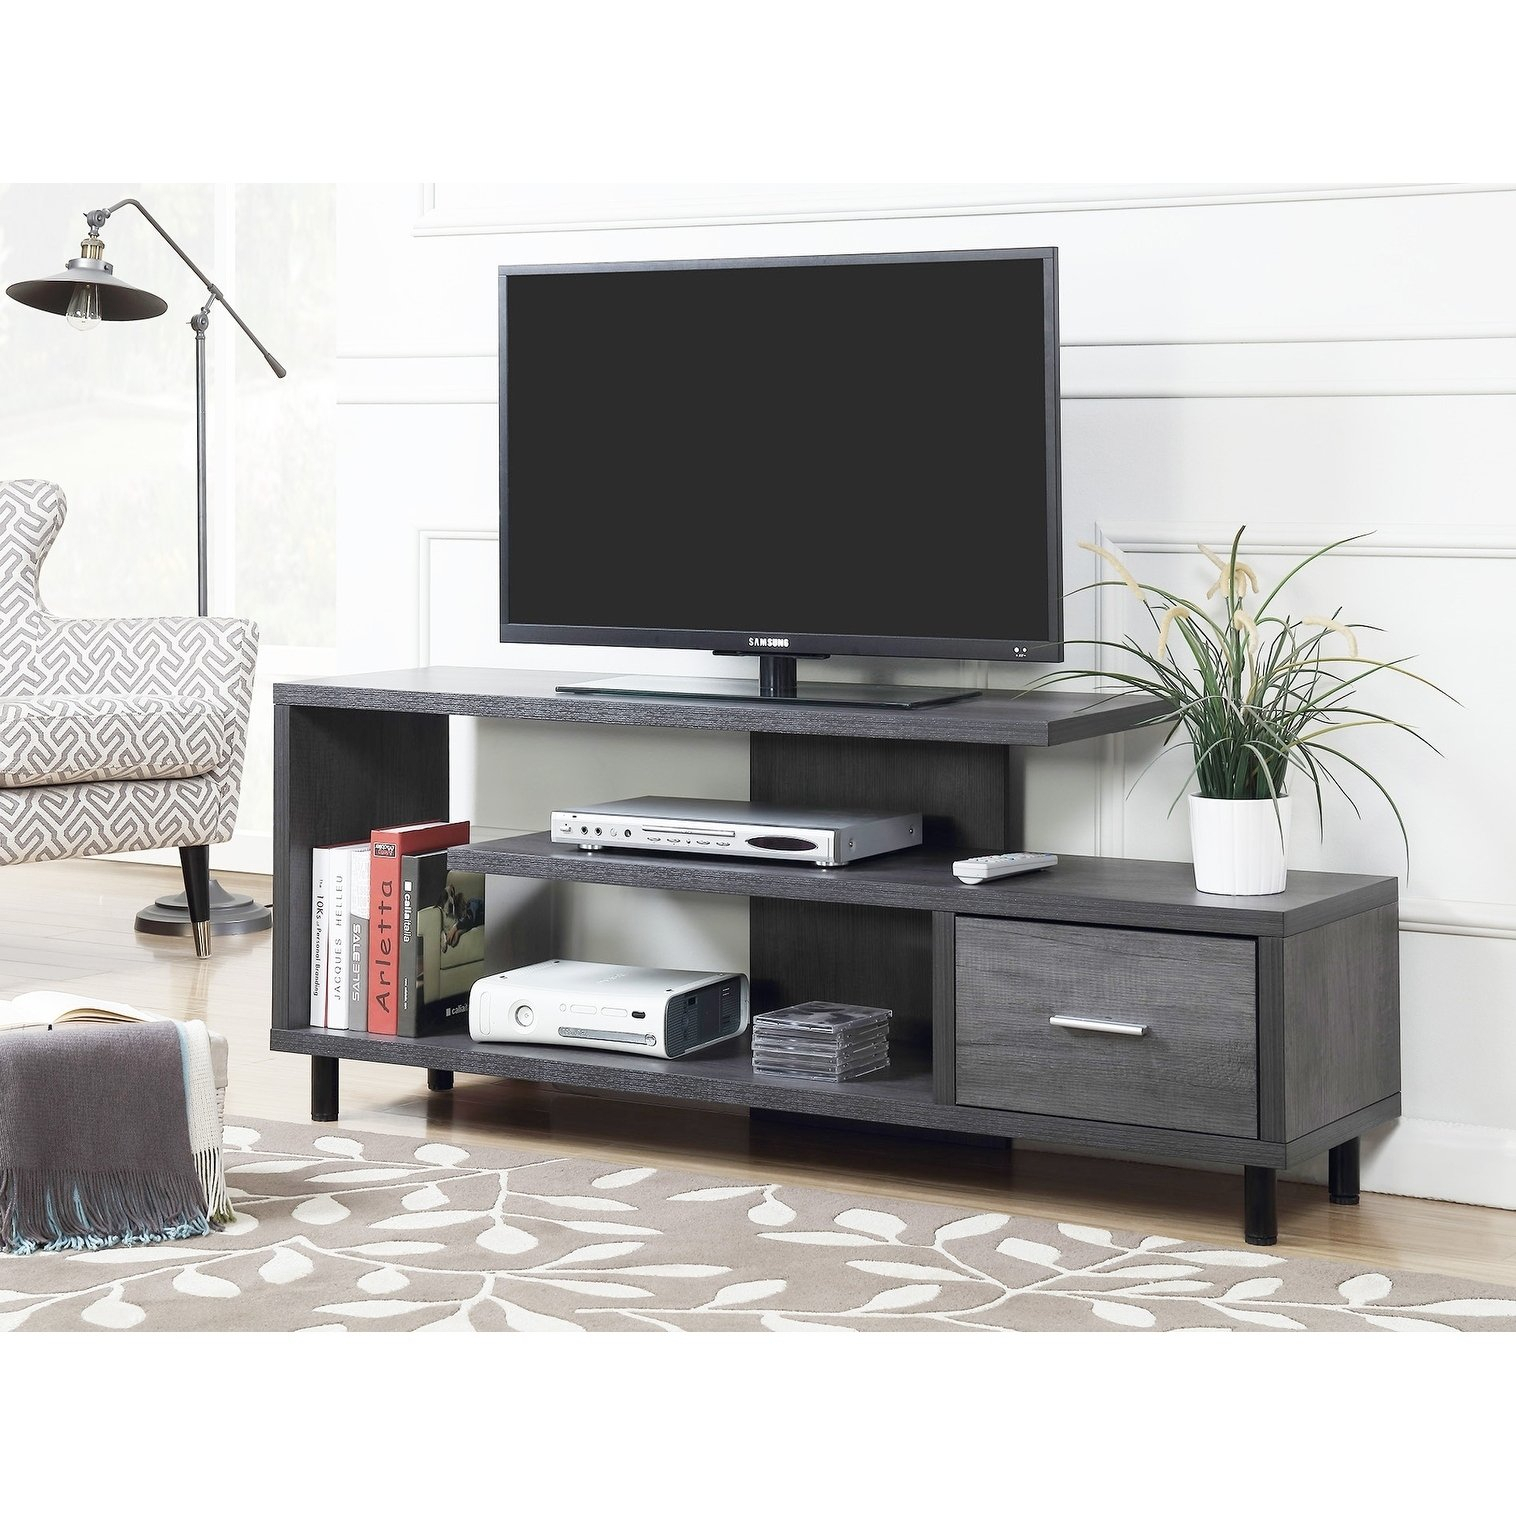 Buy Grey, 42 – 60 Inches Tv Stands & Entertainment Centers Online At Regarding Rowan 45 Inch Tv Stands (View 9 of 30)